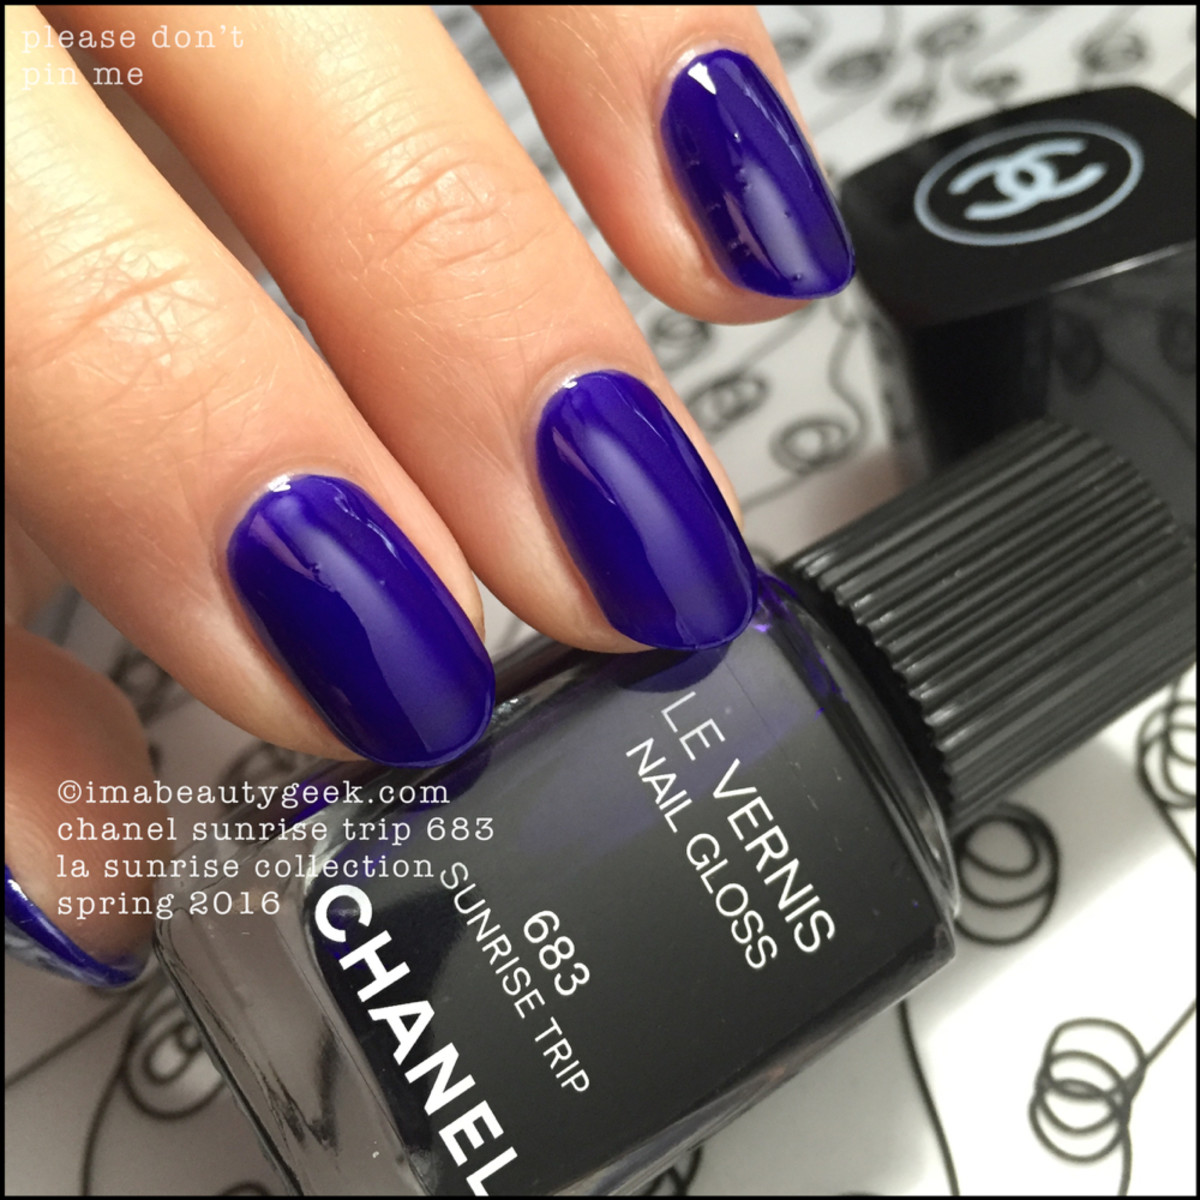 Chanel LA Sunrise Spring 2016_Chanel Sunrise Trip Vernis 683